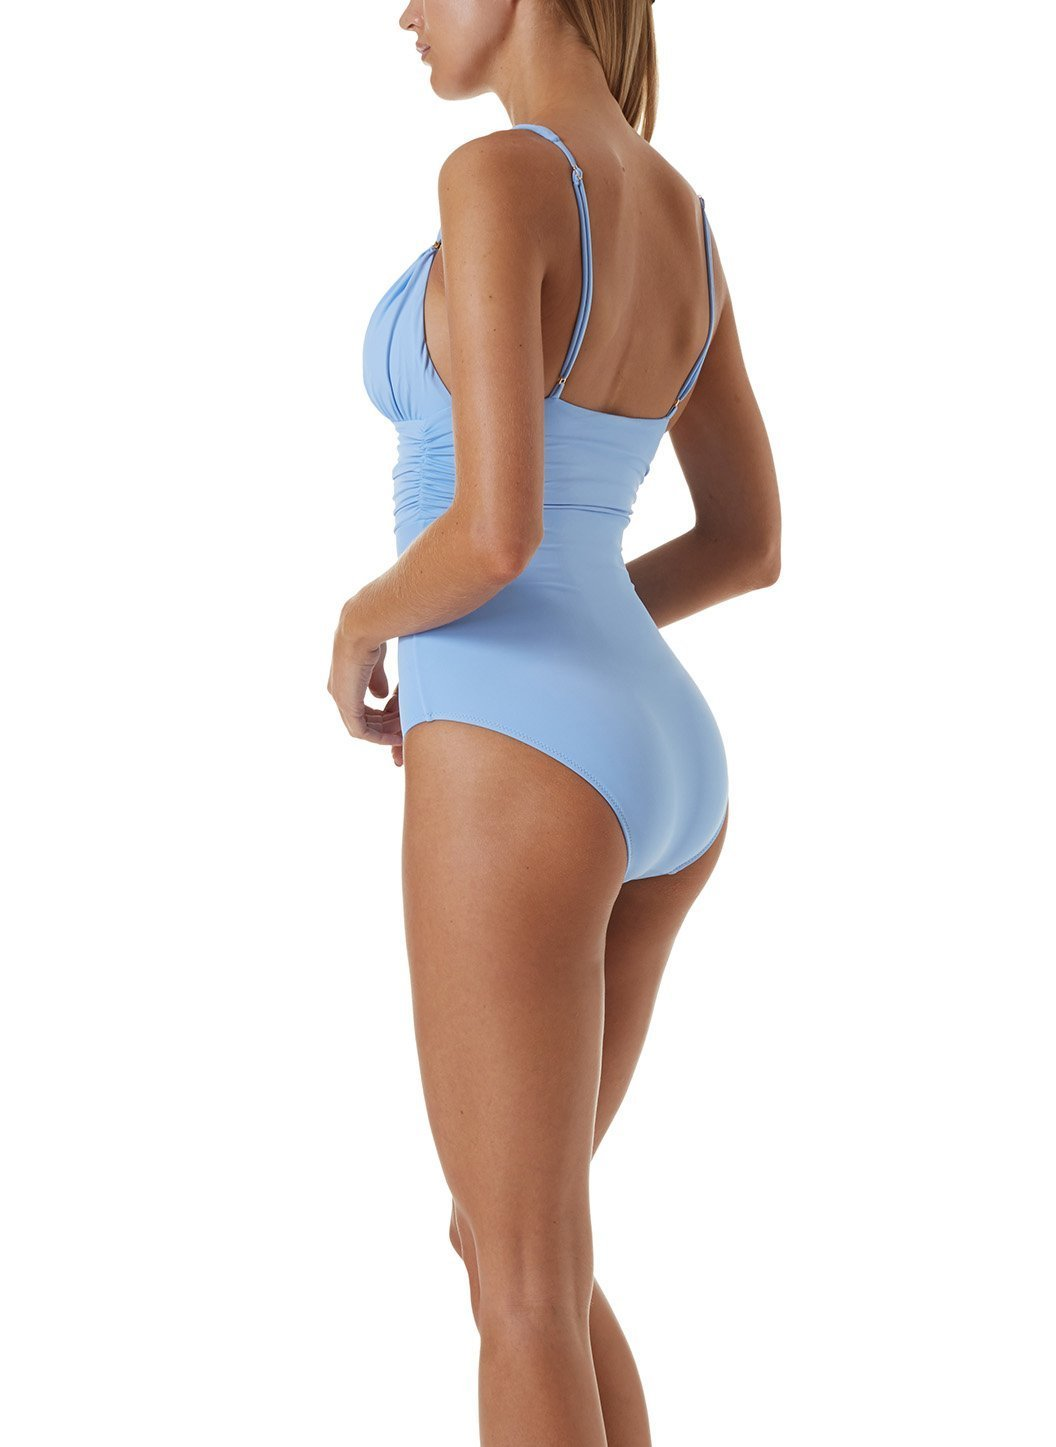 panarea cornflower swimsuit